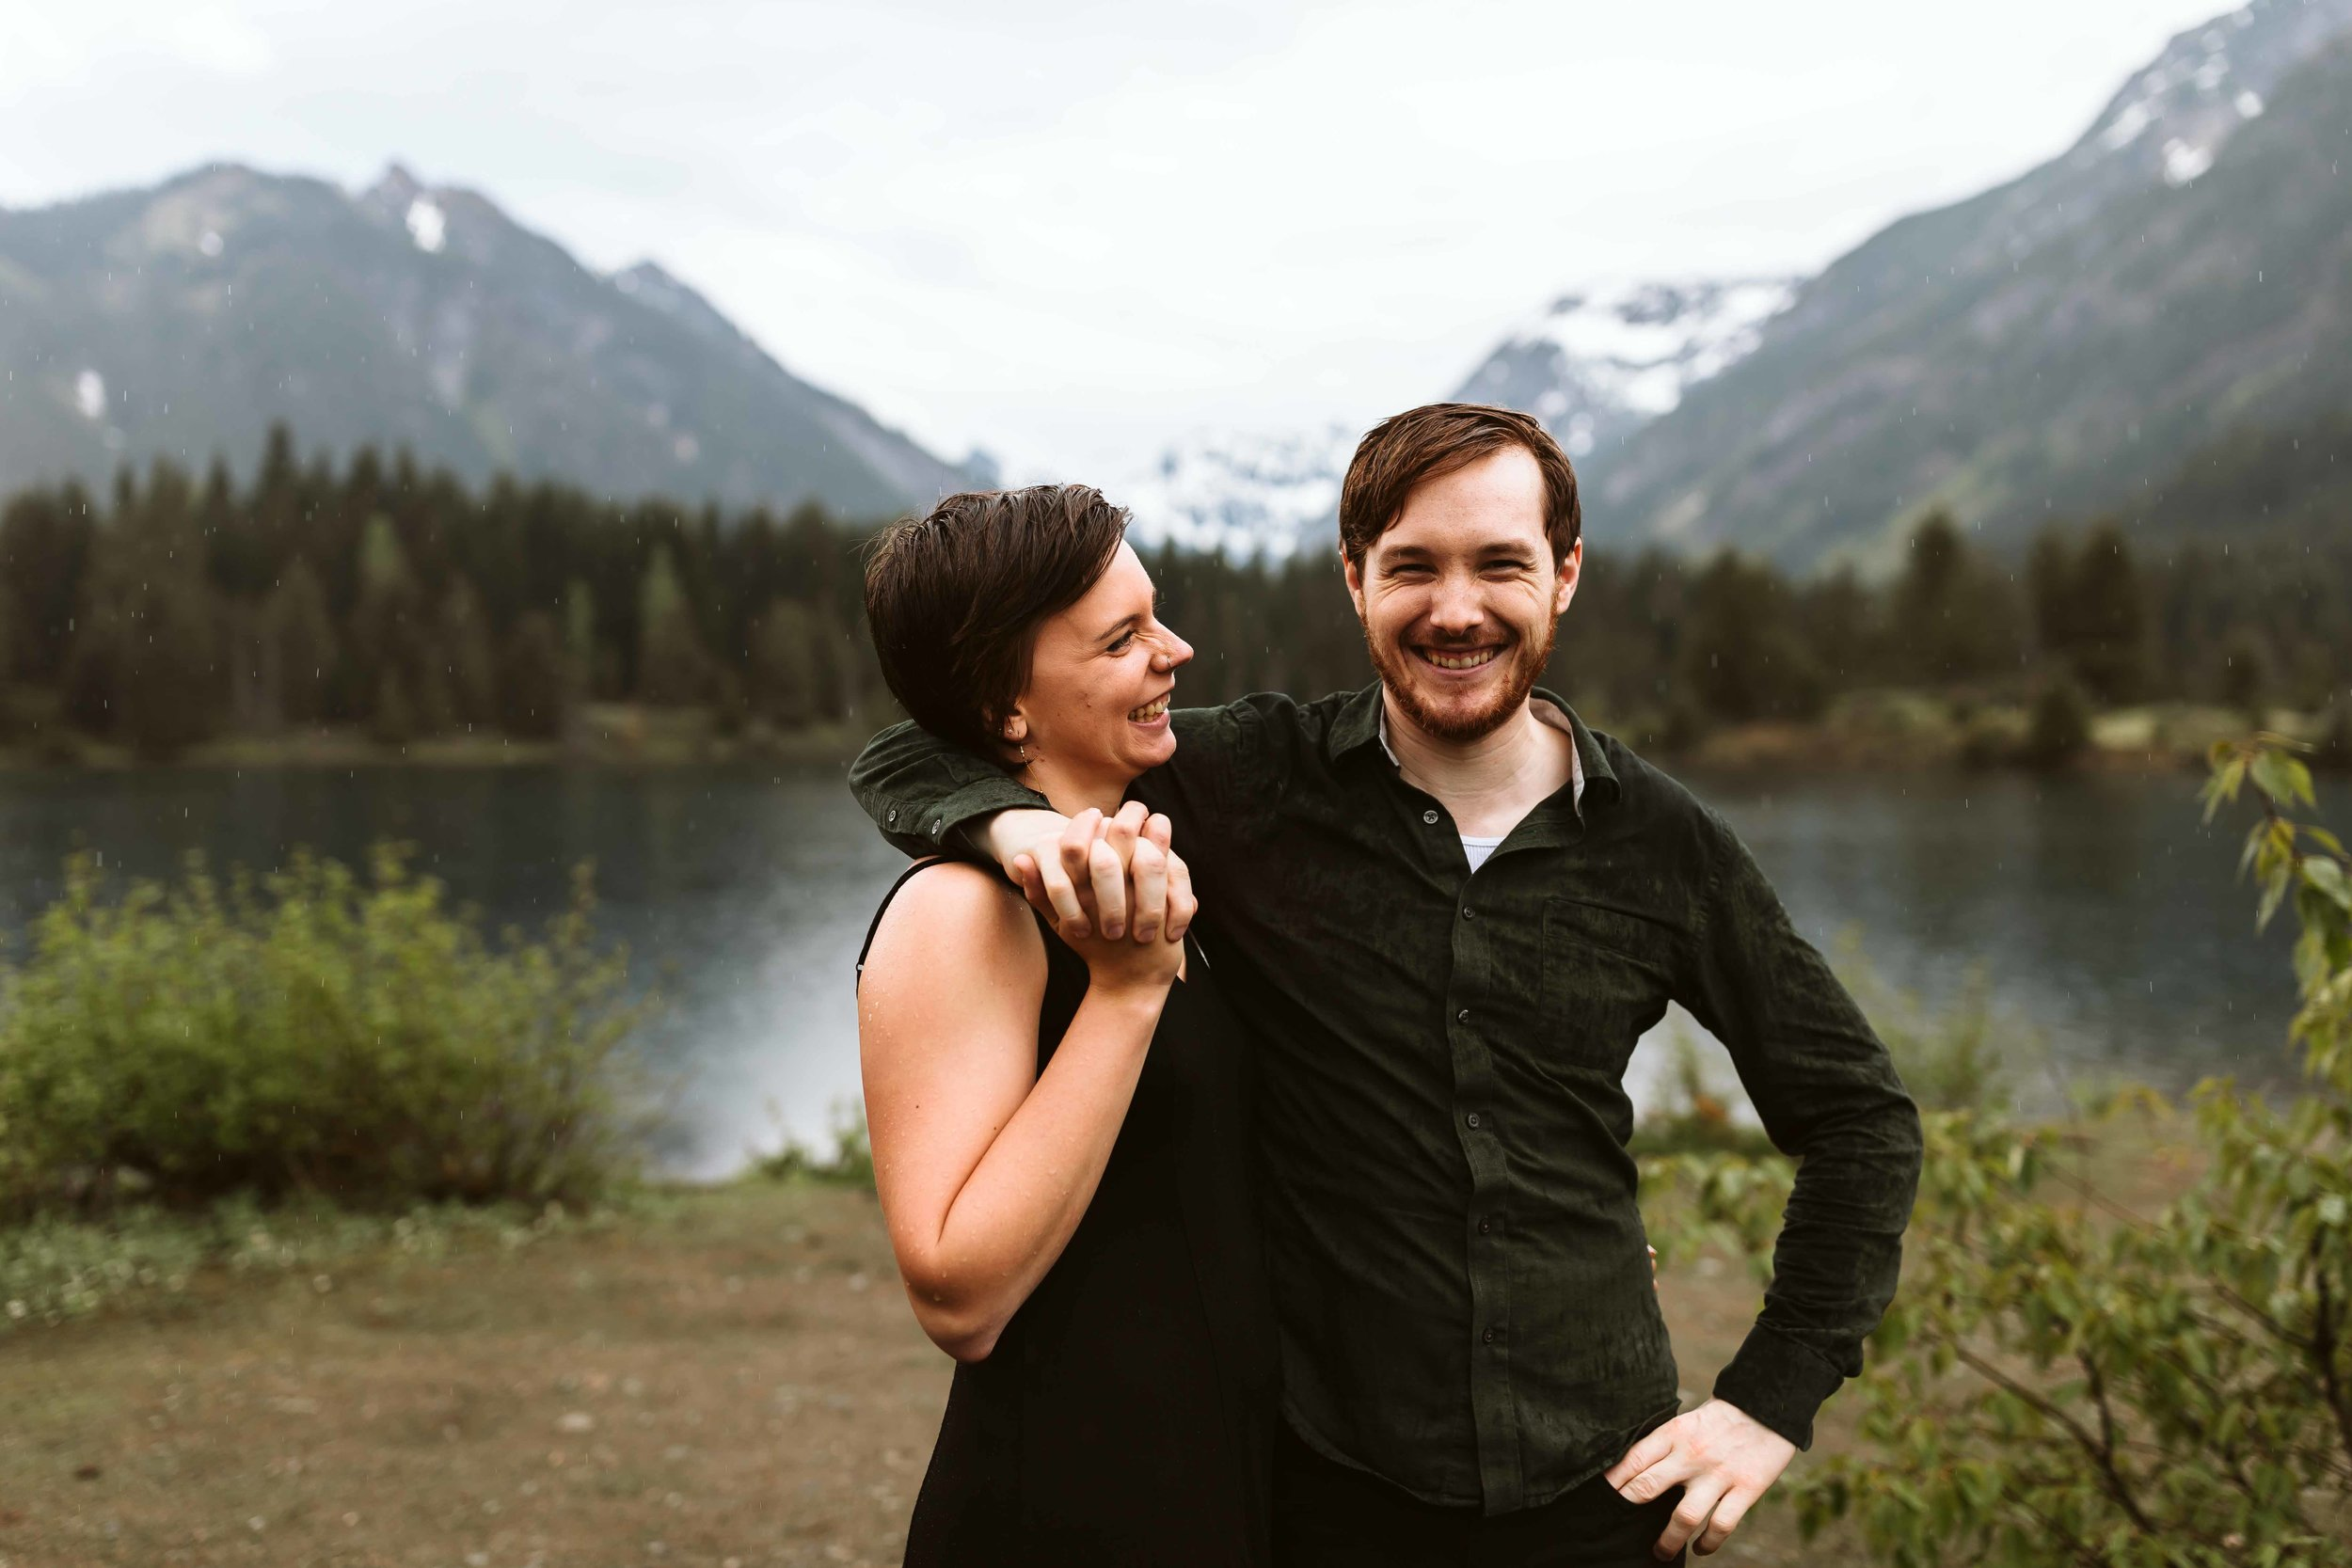 gold-creek-pond-trail-engagement-57.jpg